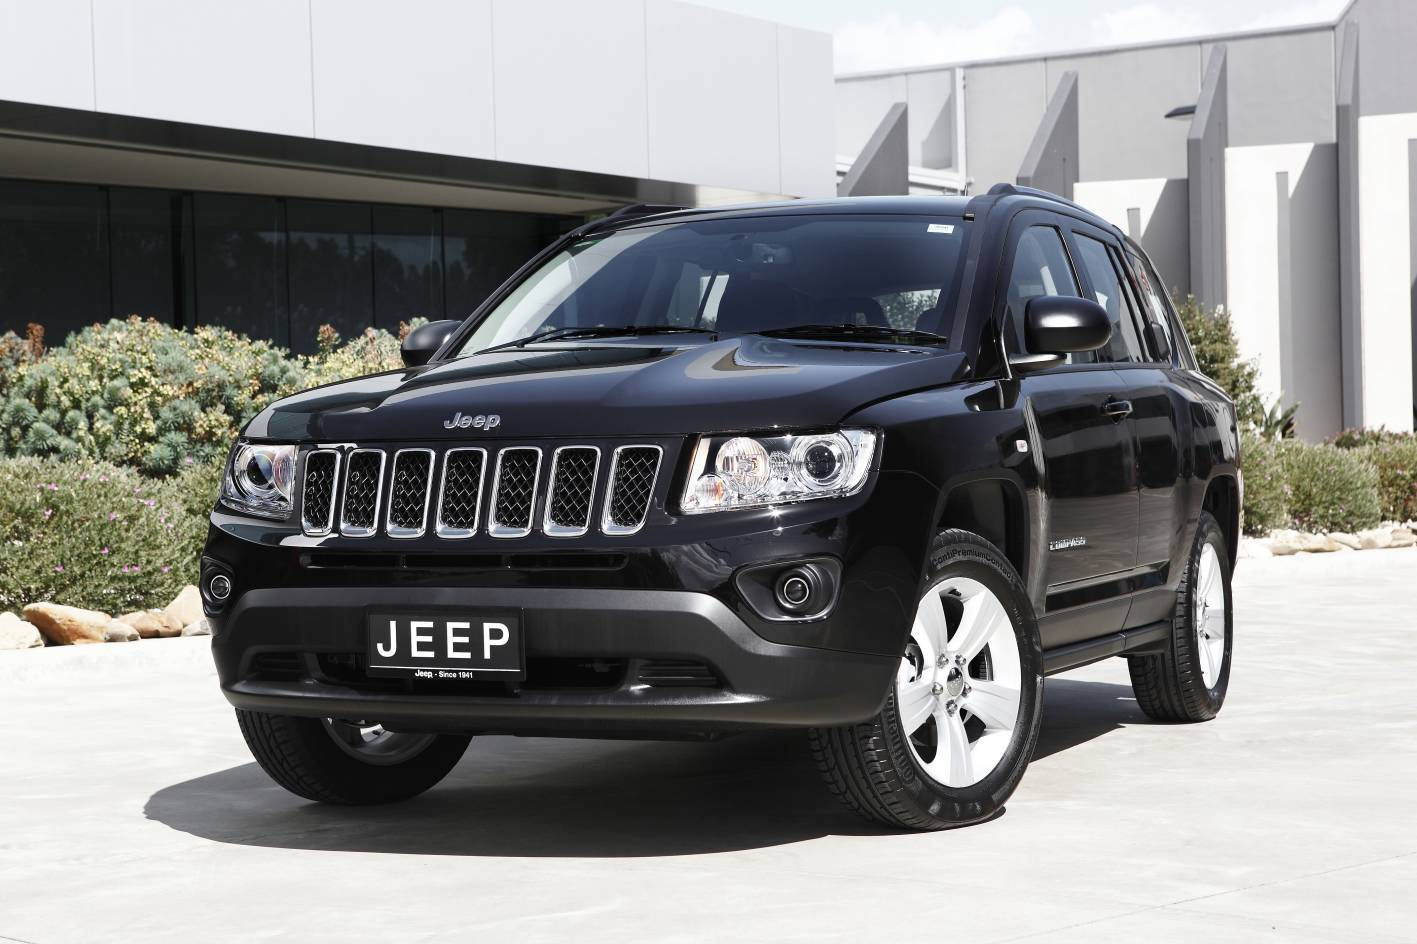 mydrive the compact new jeep compass suv is now on sale in australia combining sophisticated. Black Bedroom Furniture Sets. Home Design Ideas